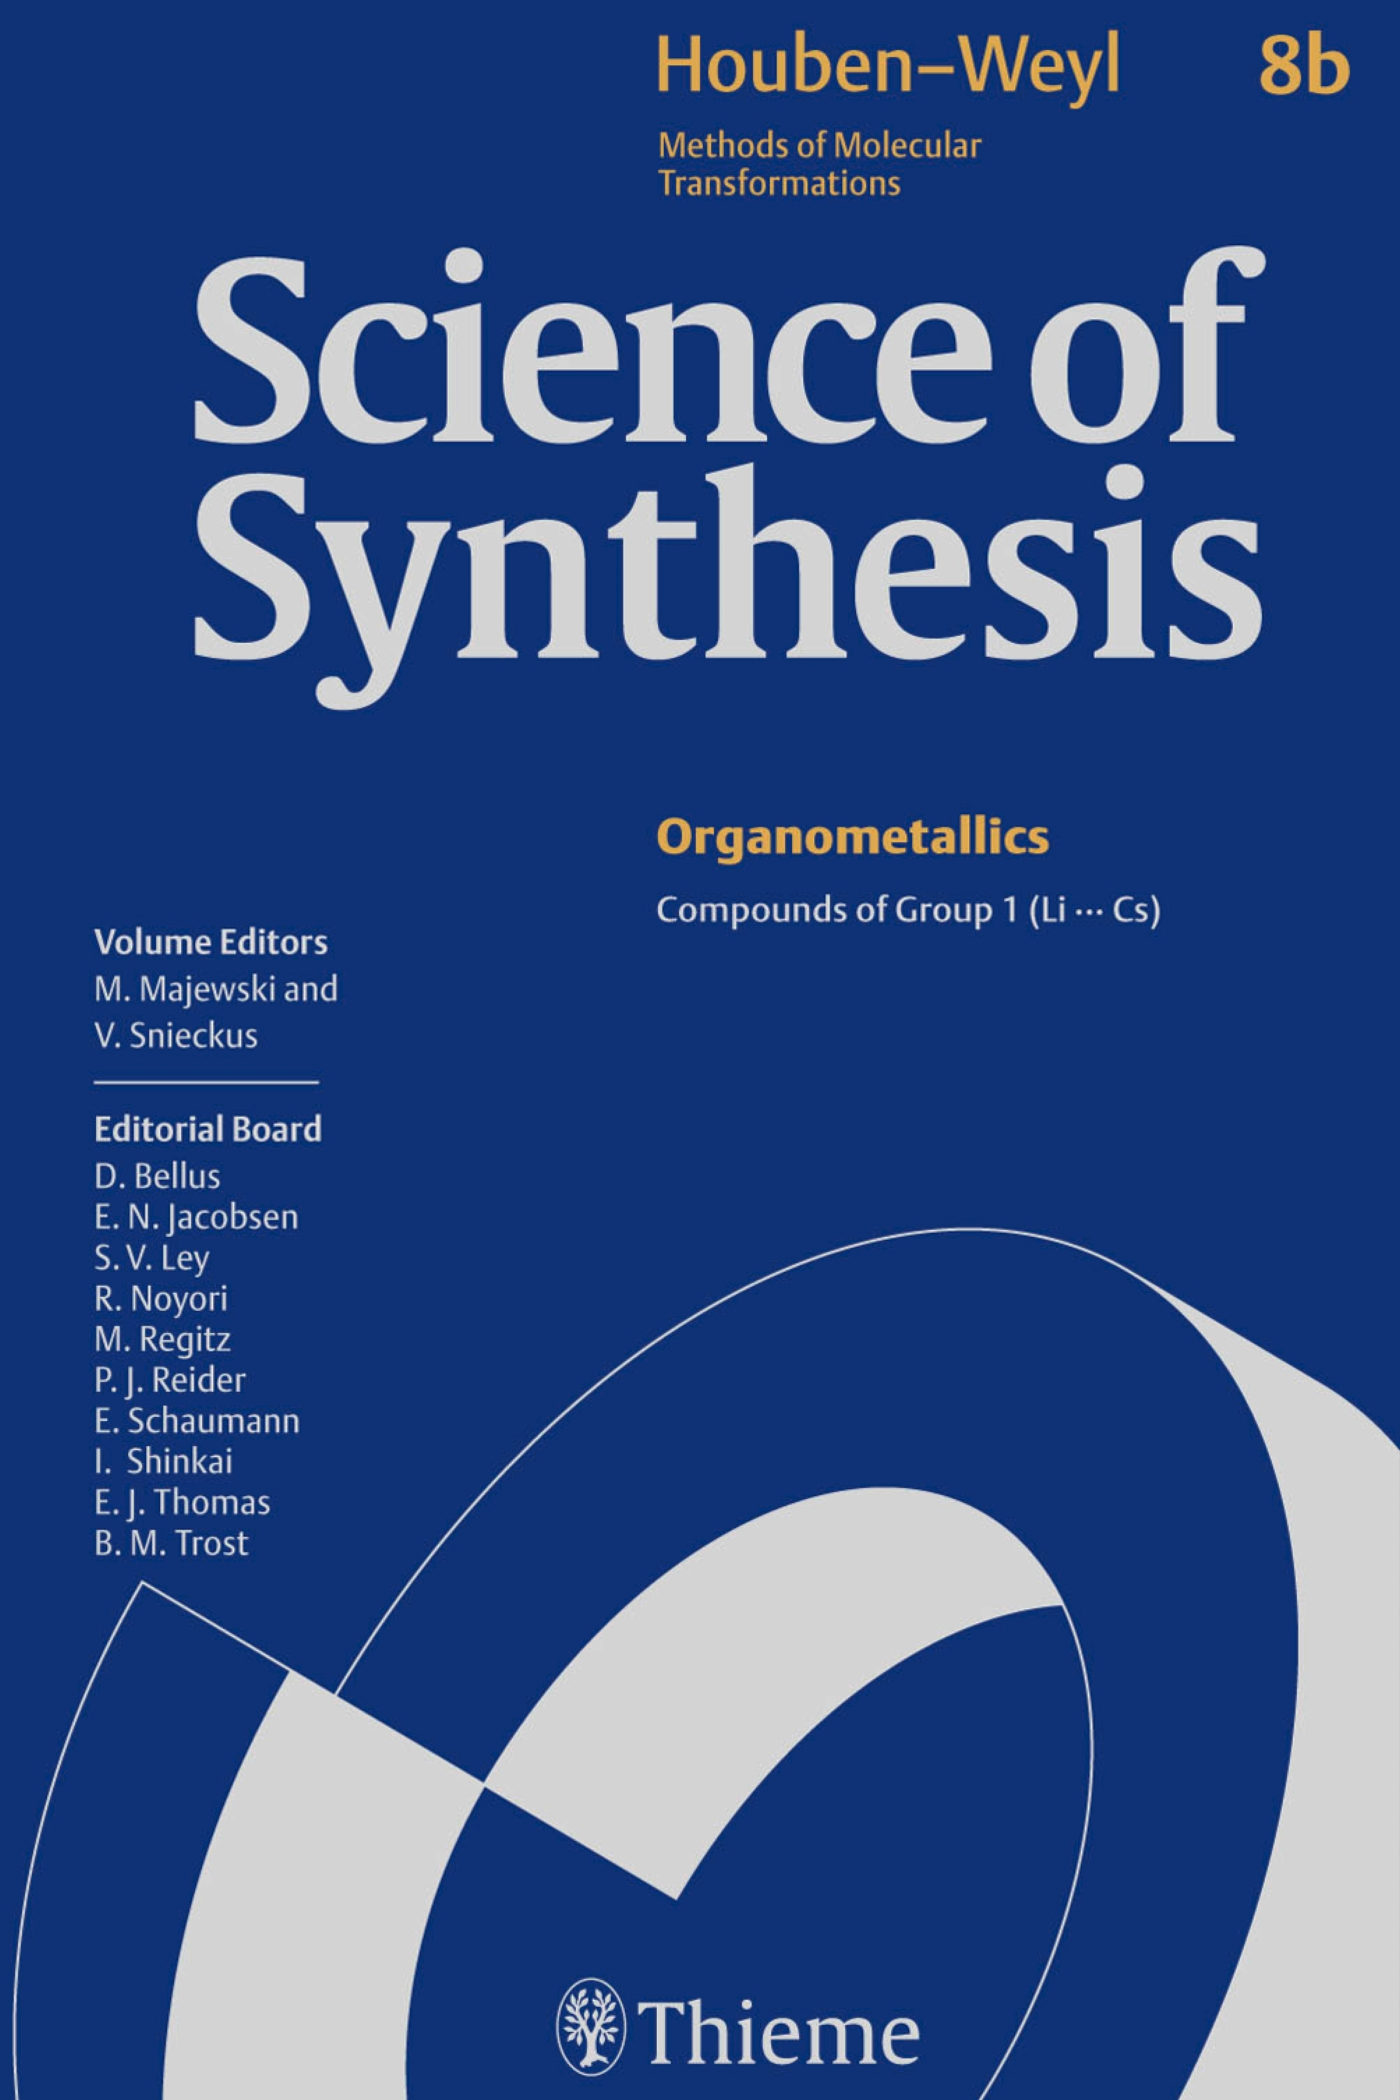 Science of Synthesis: Houben-Weyl Methods of Molecular Transformations  Vol. 8b